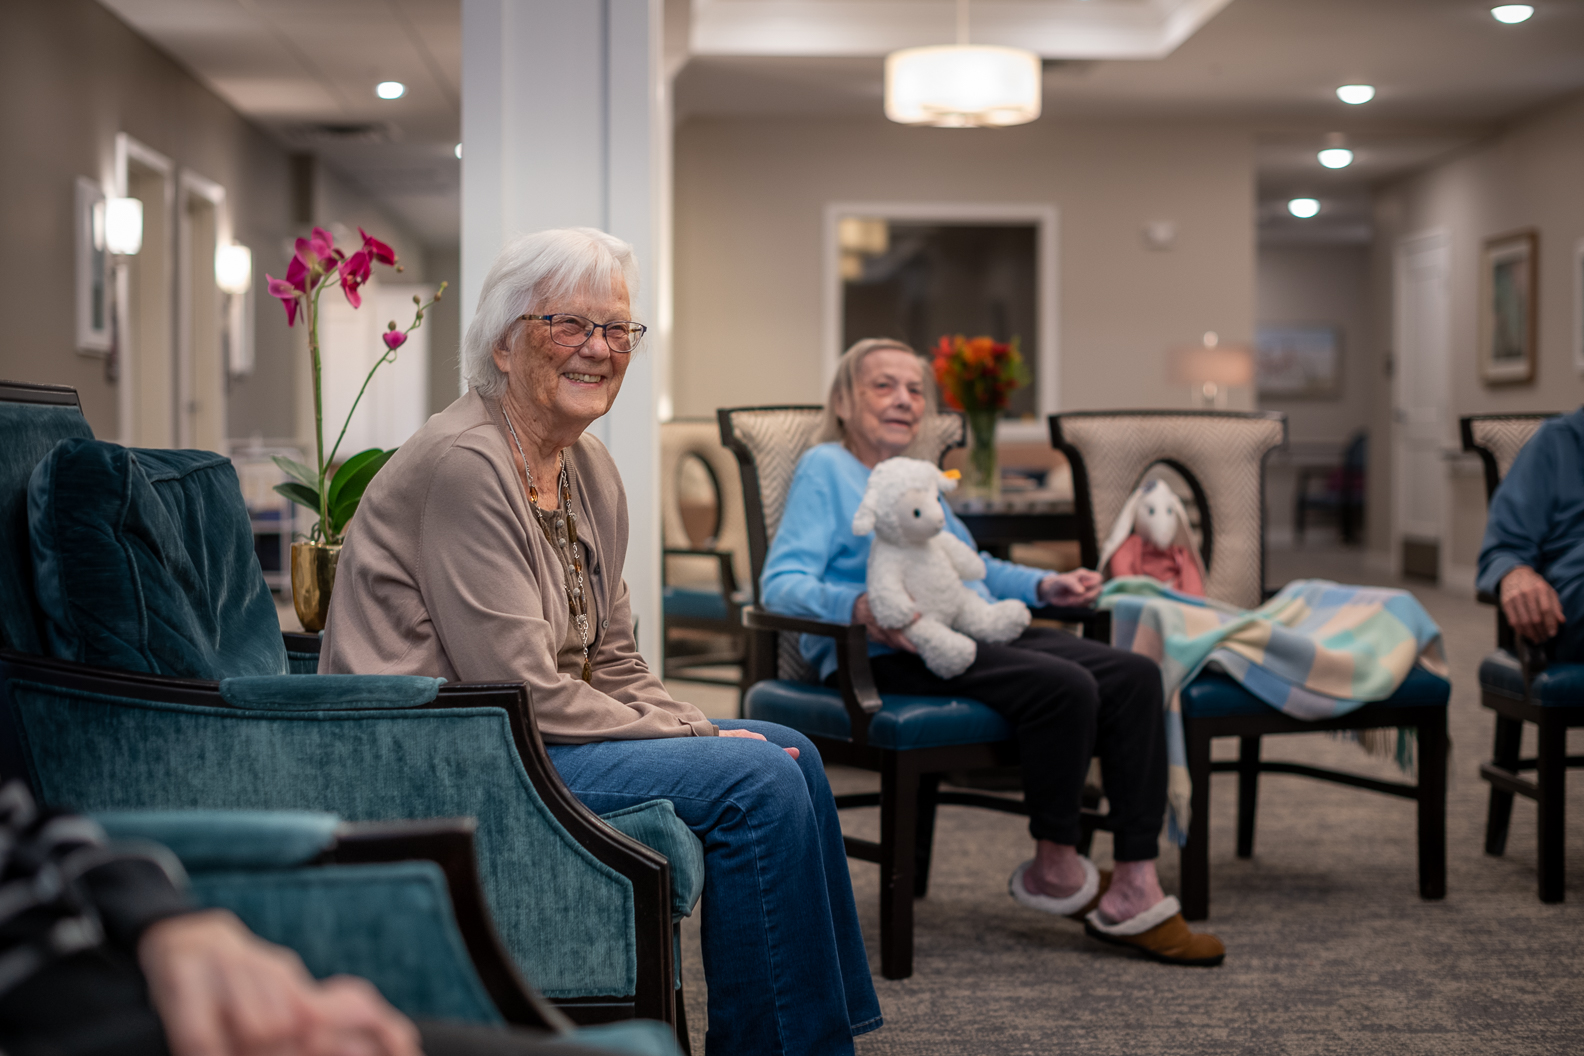 two women smiling stuffed animals common room senior living assisted living facility apartments memory care patients golden valley minnesota